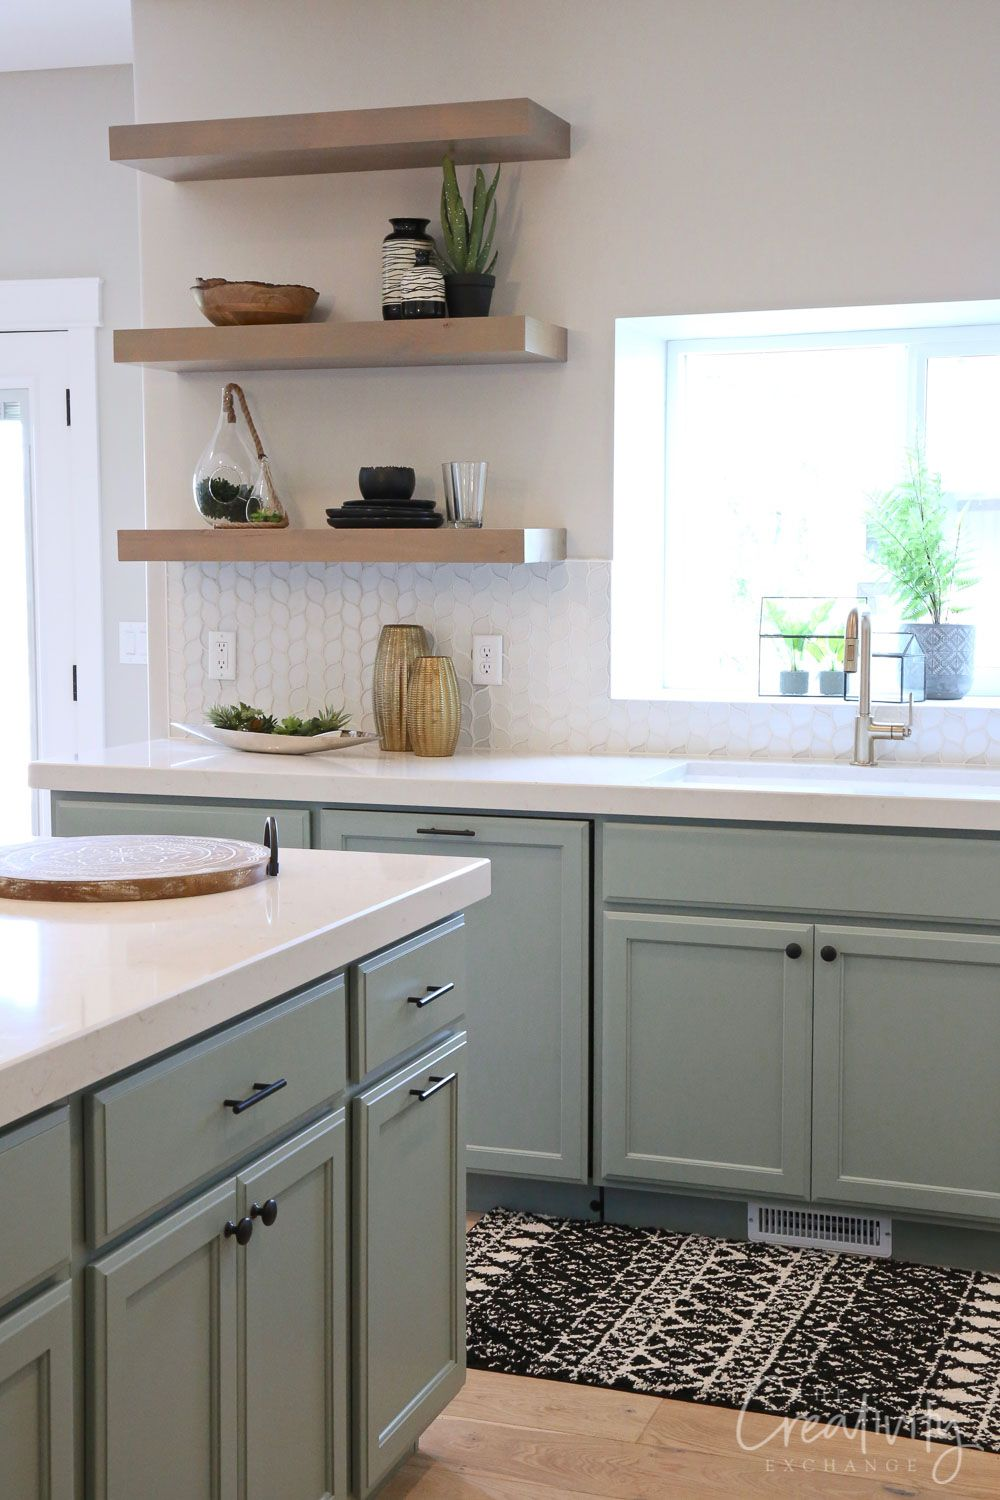 2019 Uv Parade Of Homes Recap Part 2 New Kitchen Cabinets Country Kitchen Decor Kitchen Renovation